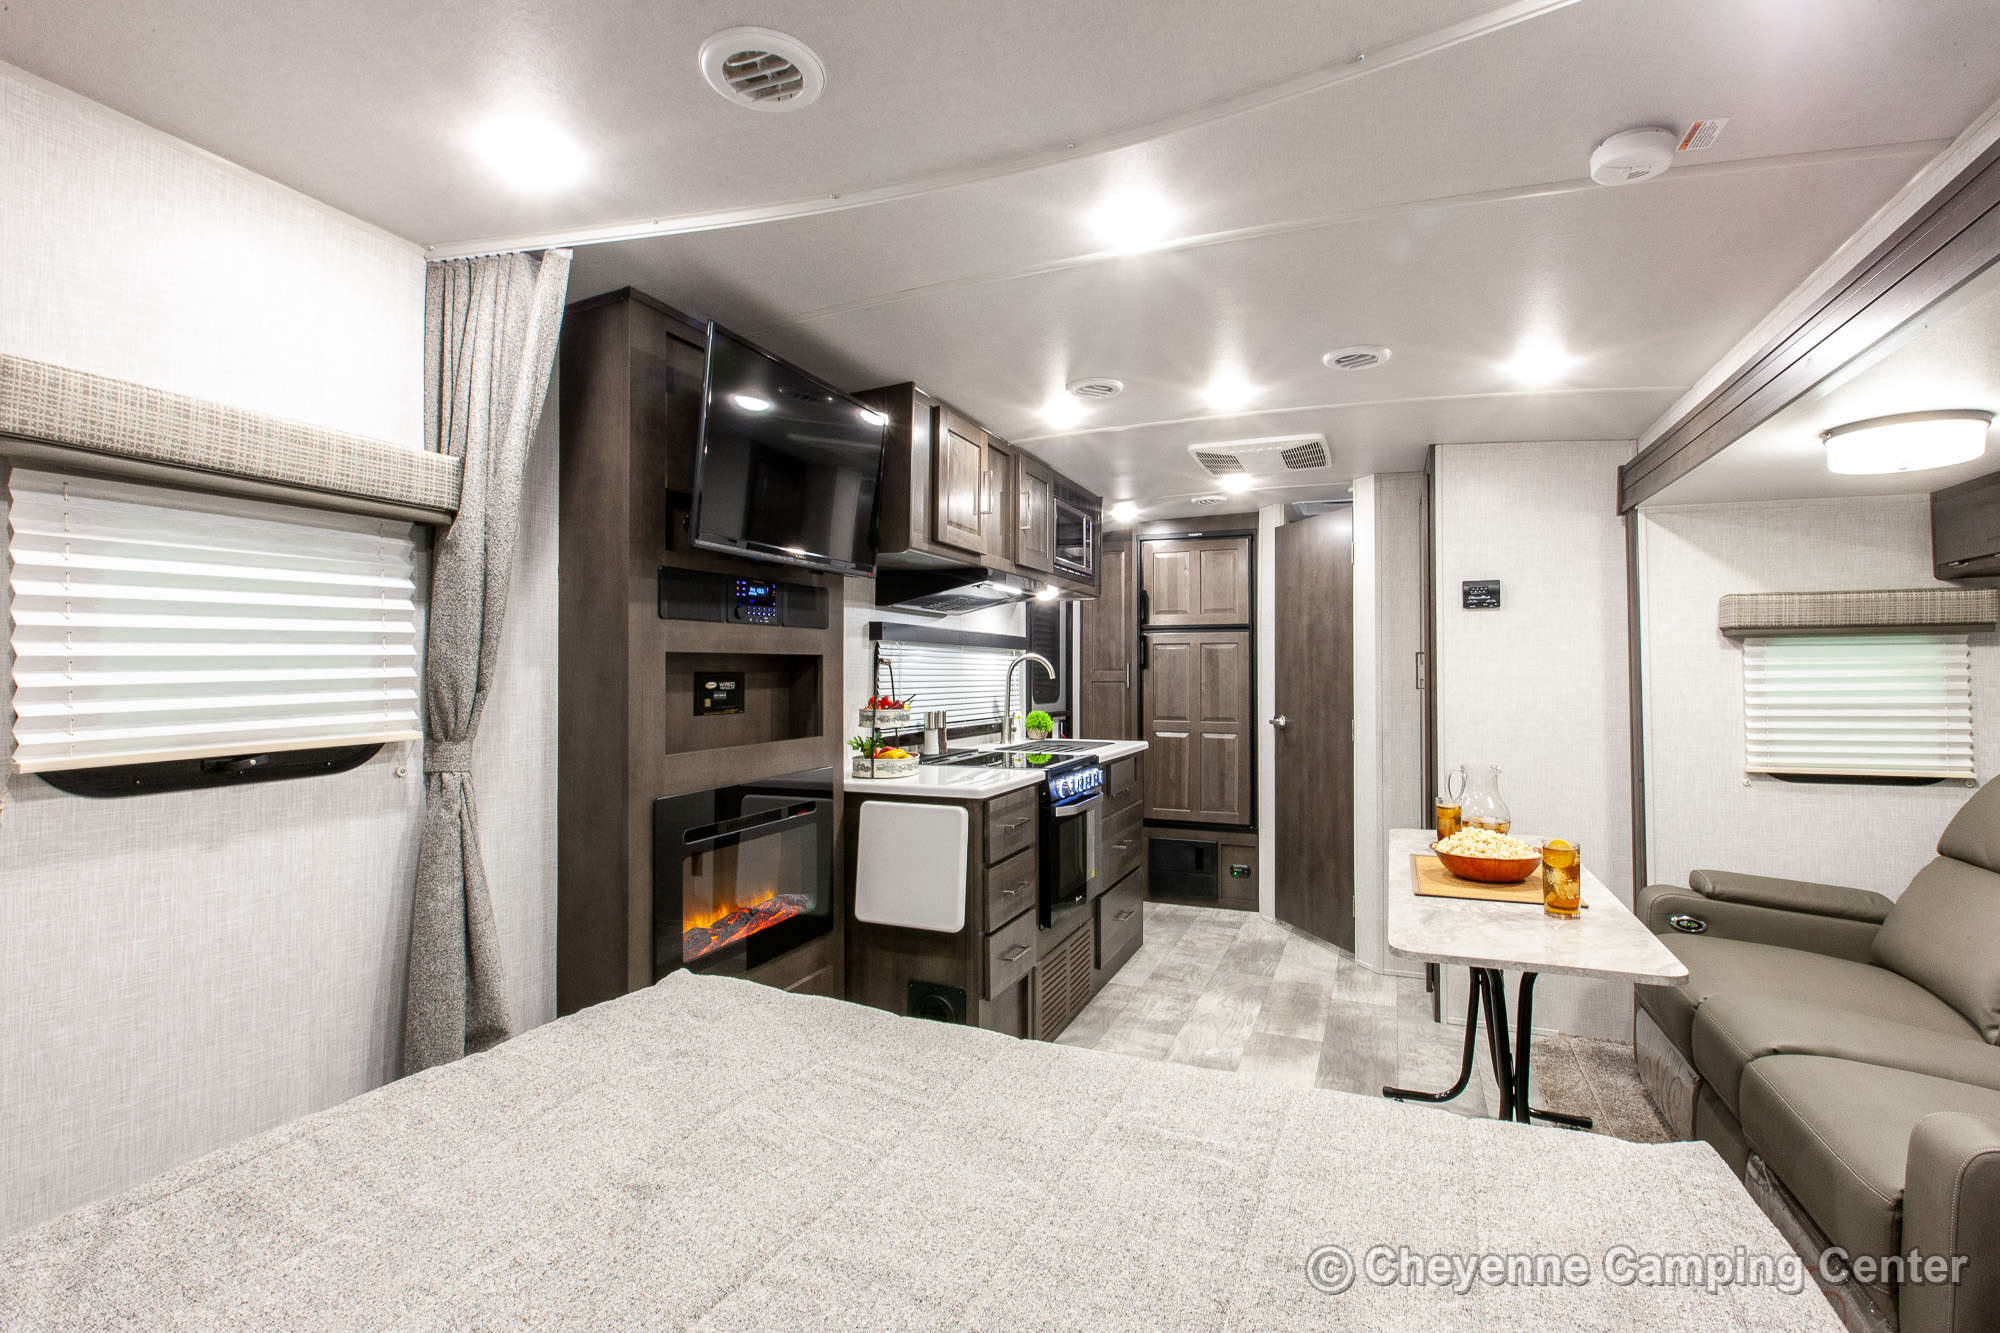 2022 Forest River Flagstaff Micro Lite 22FBS Travel Trailer Interior Image